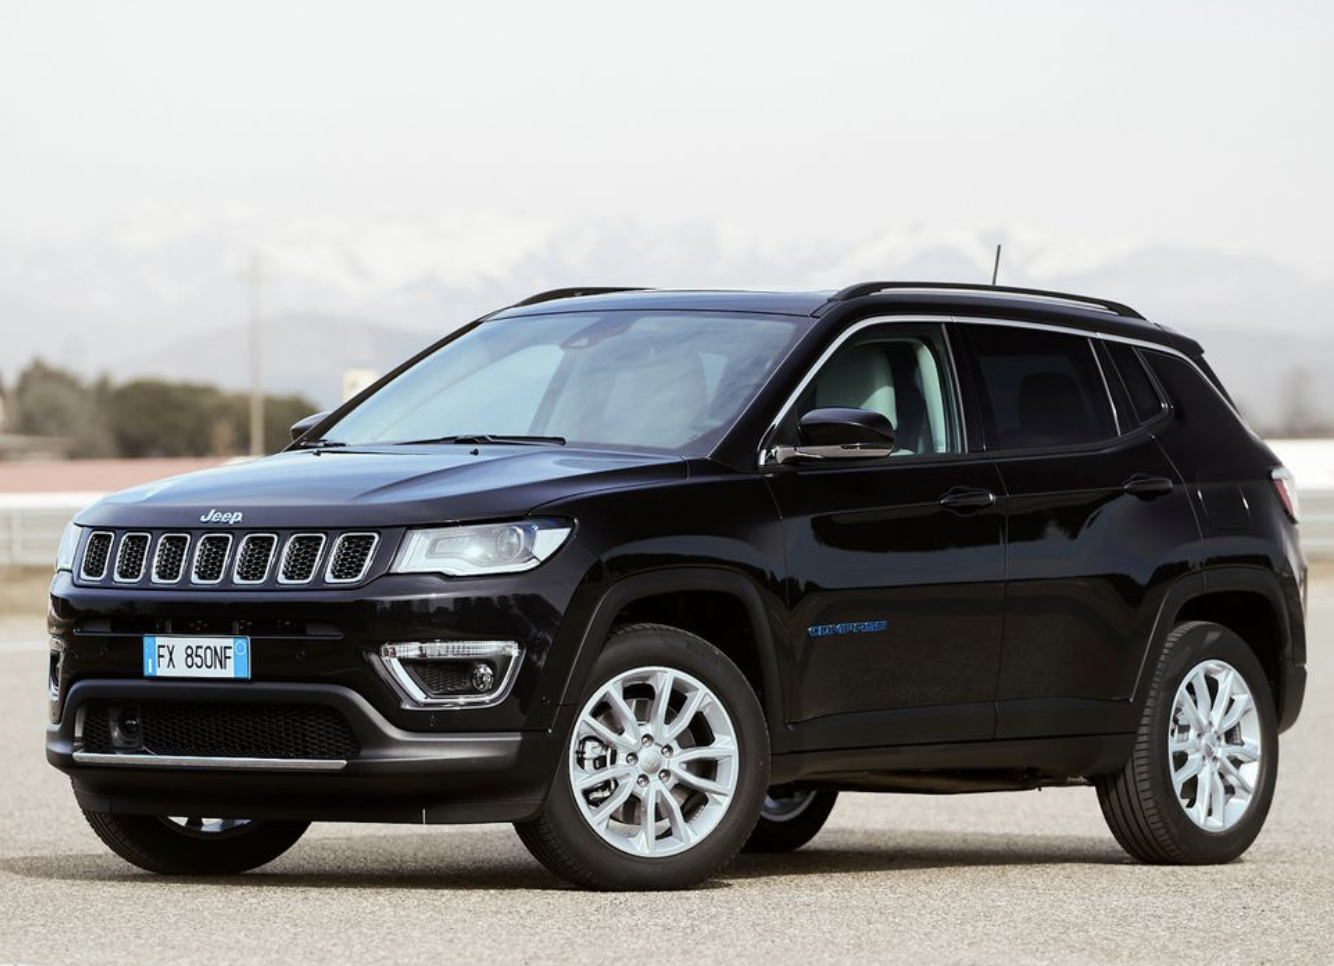 2021 Jeep Compass 4xe European Model In 2020 Jeep Wrangler